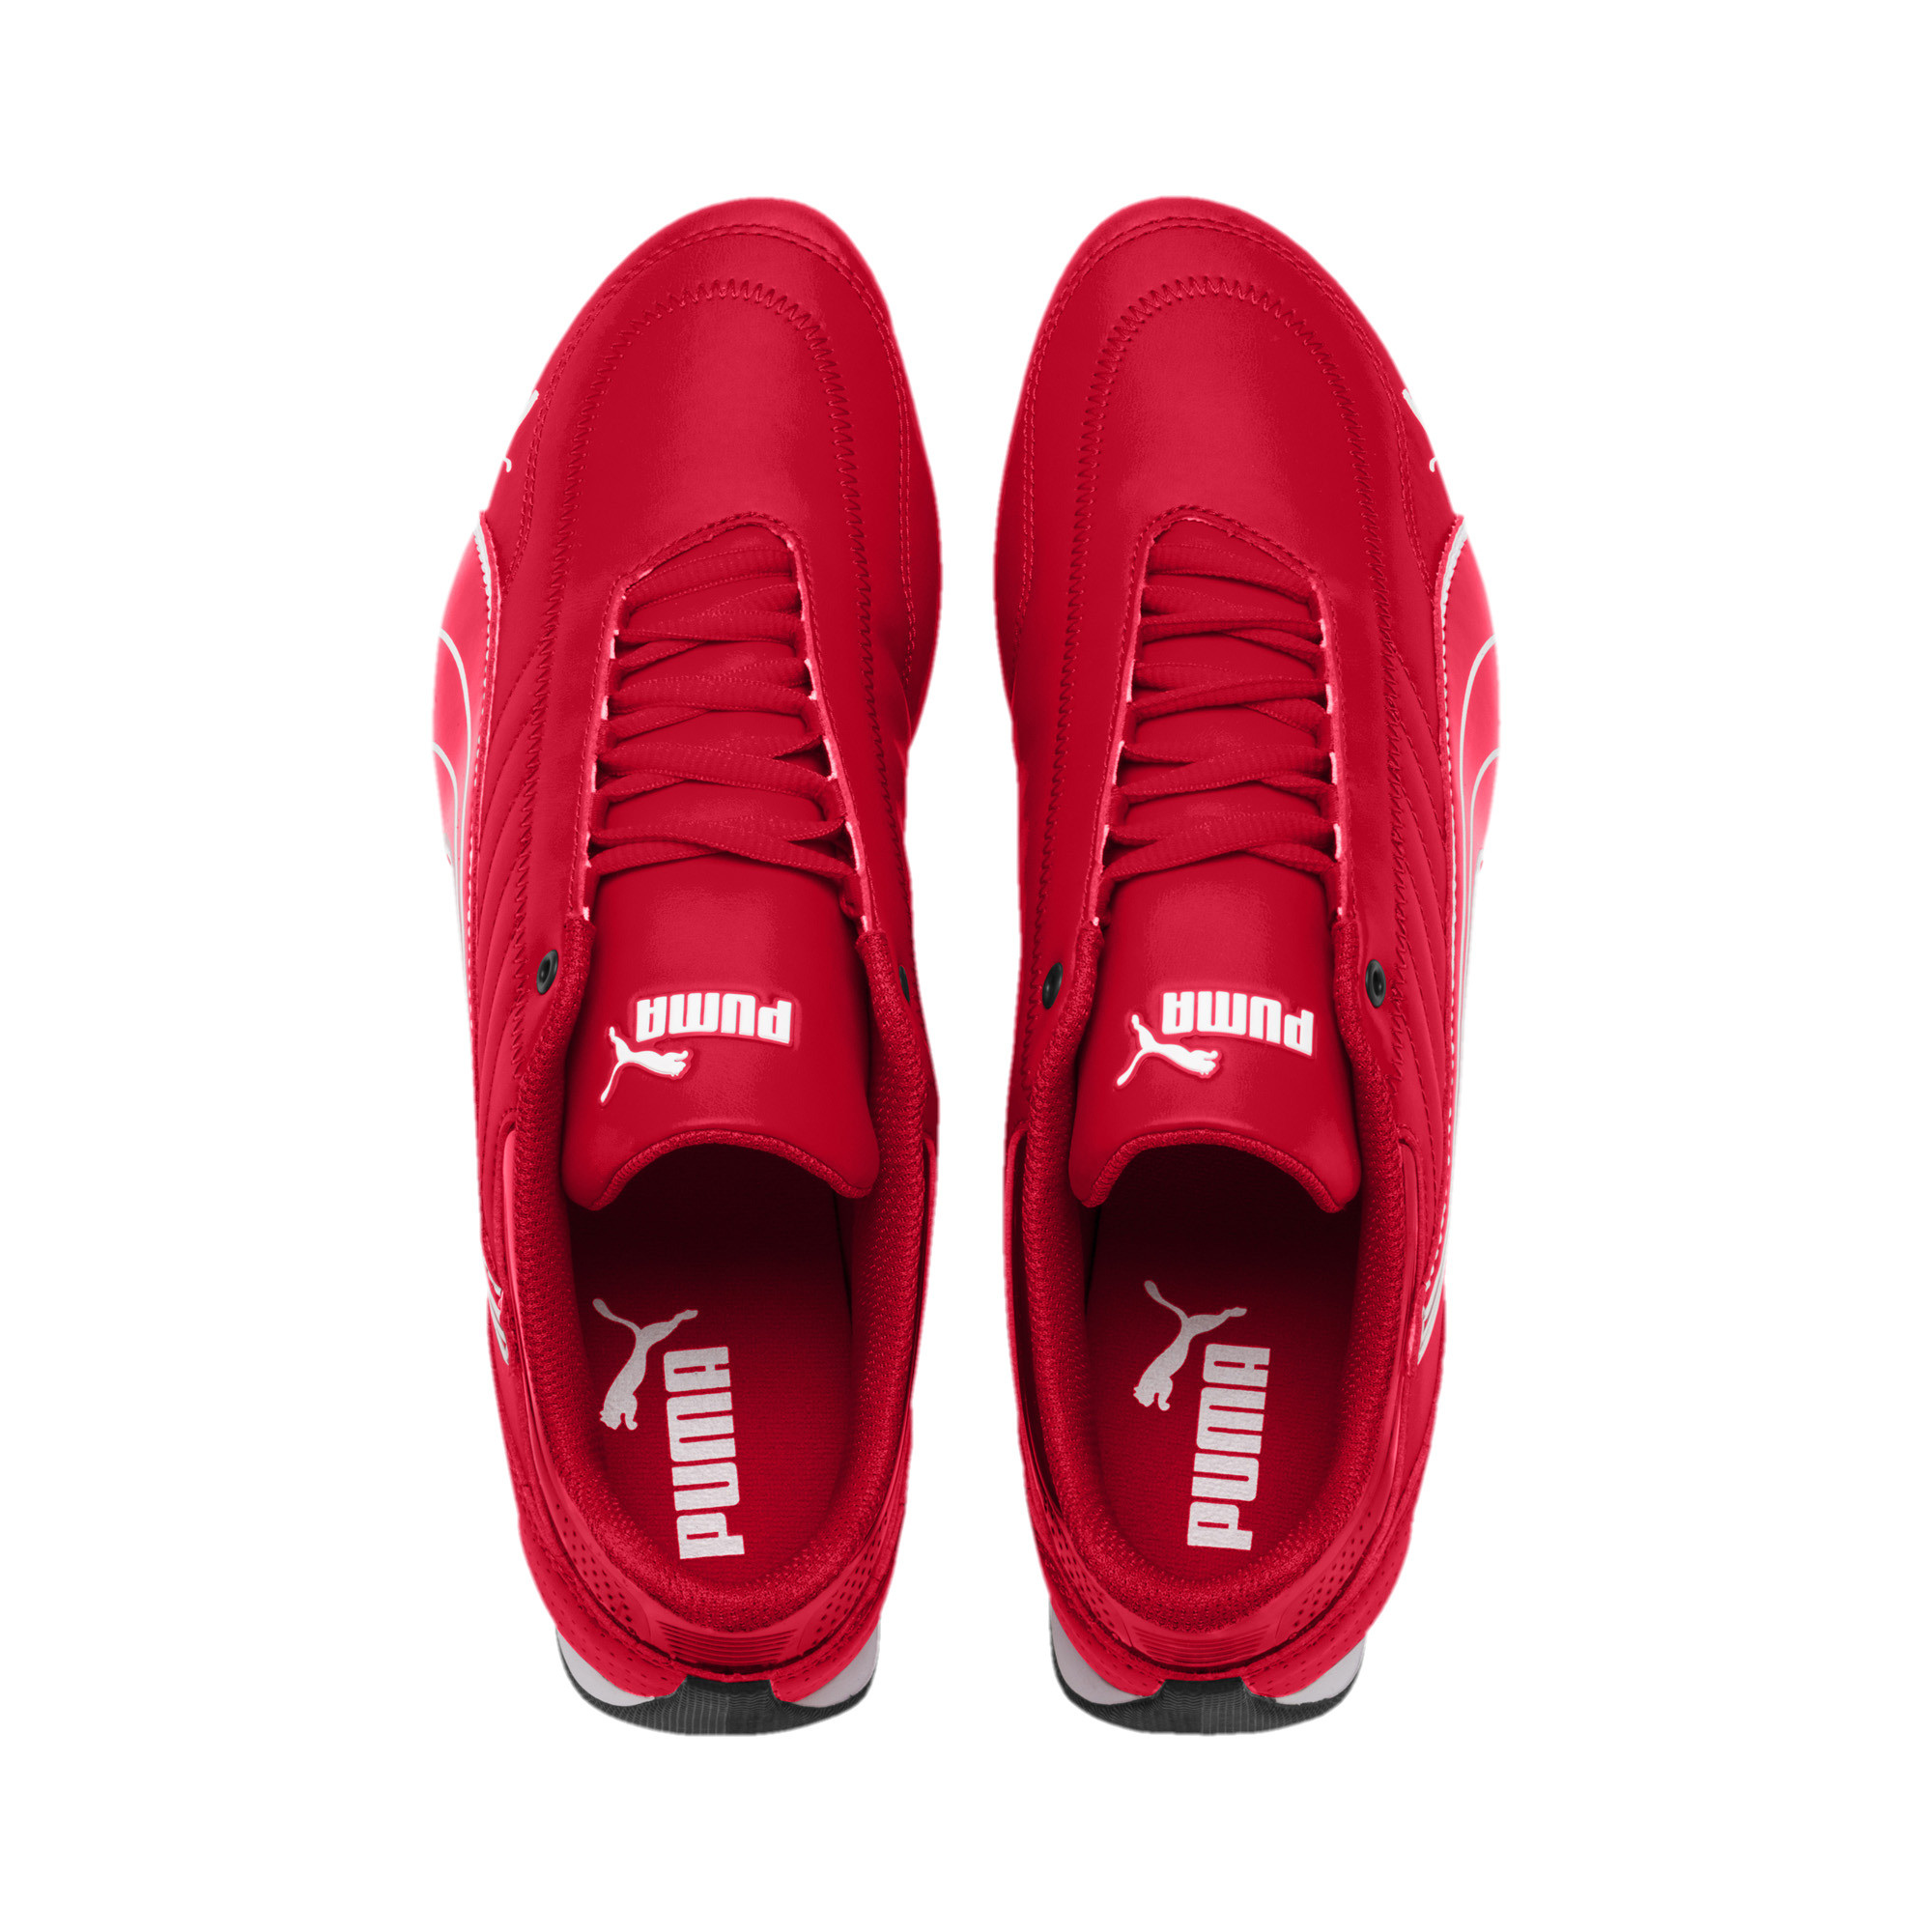 PUMA-Scuderia-Ferrari-Future-Kart-Cat-Men-039-s-Shoes-Men-Shoe-Auto thumbnail 15